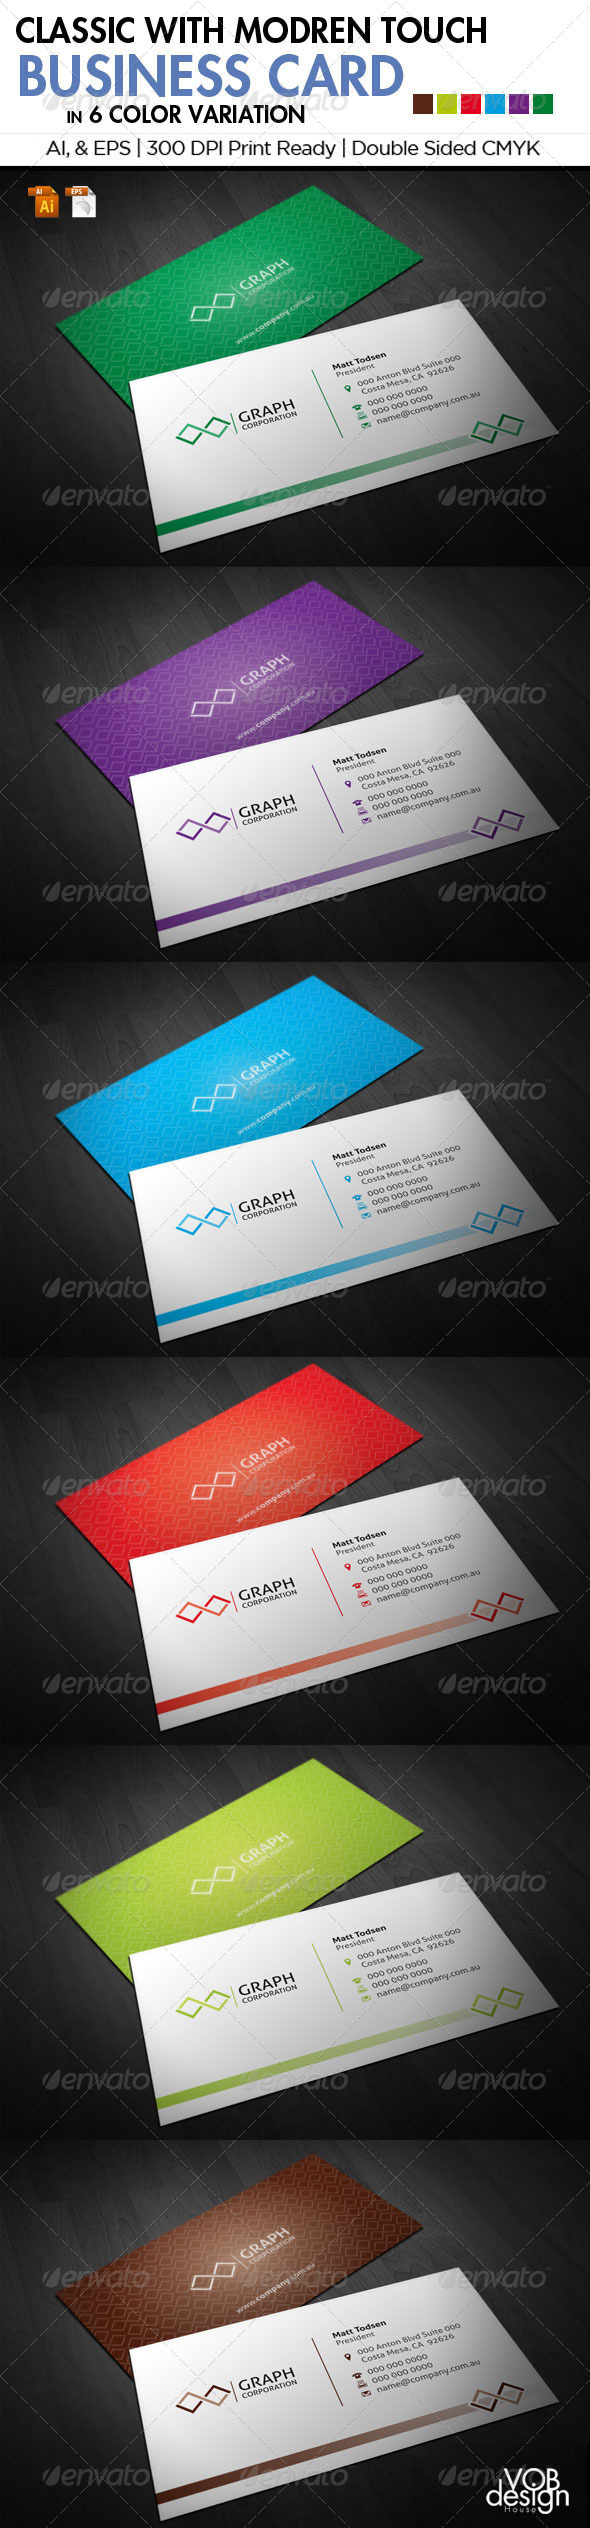 GraphicRiver Classic with Modern Touch Business Card 1 5840084